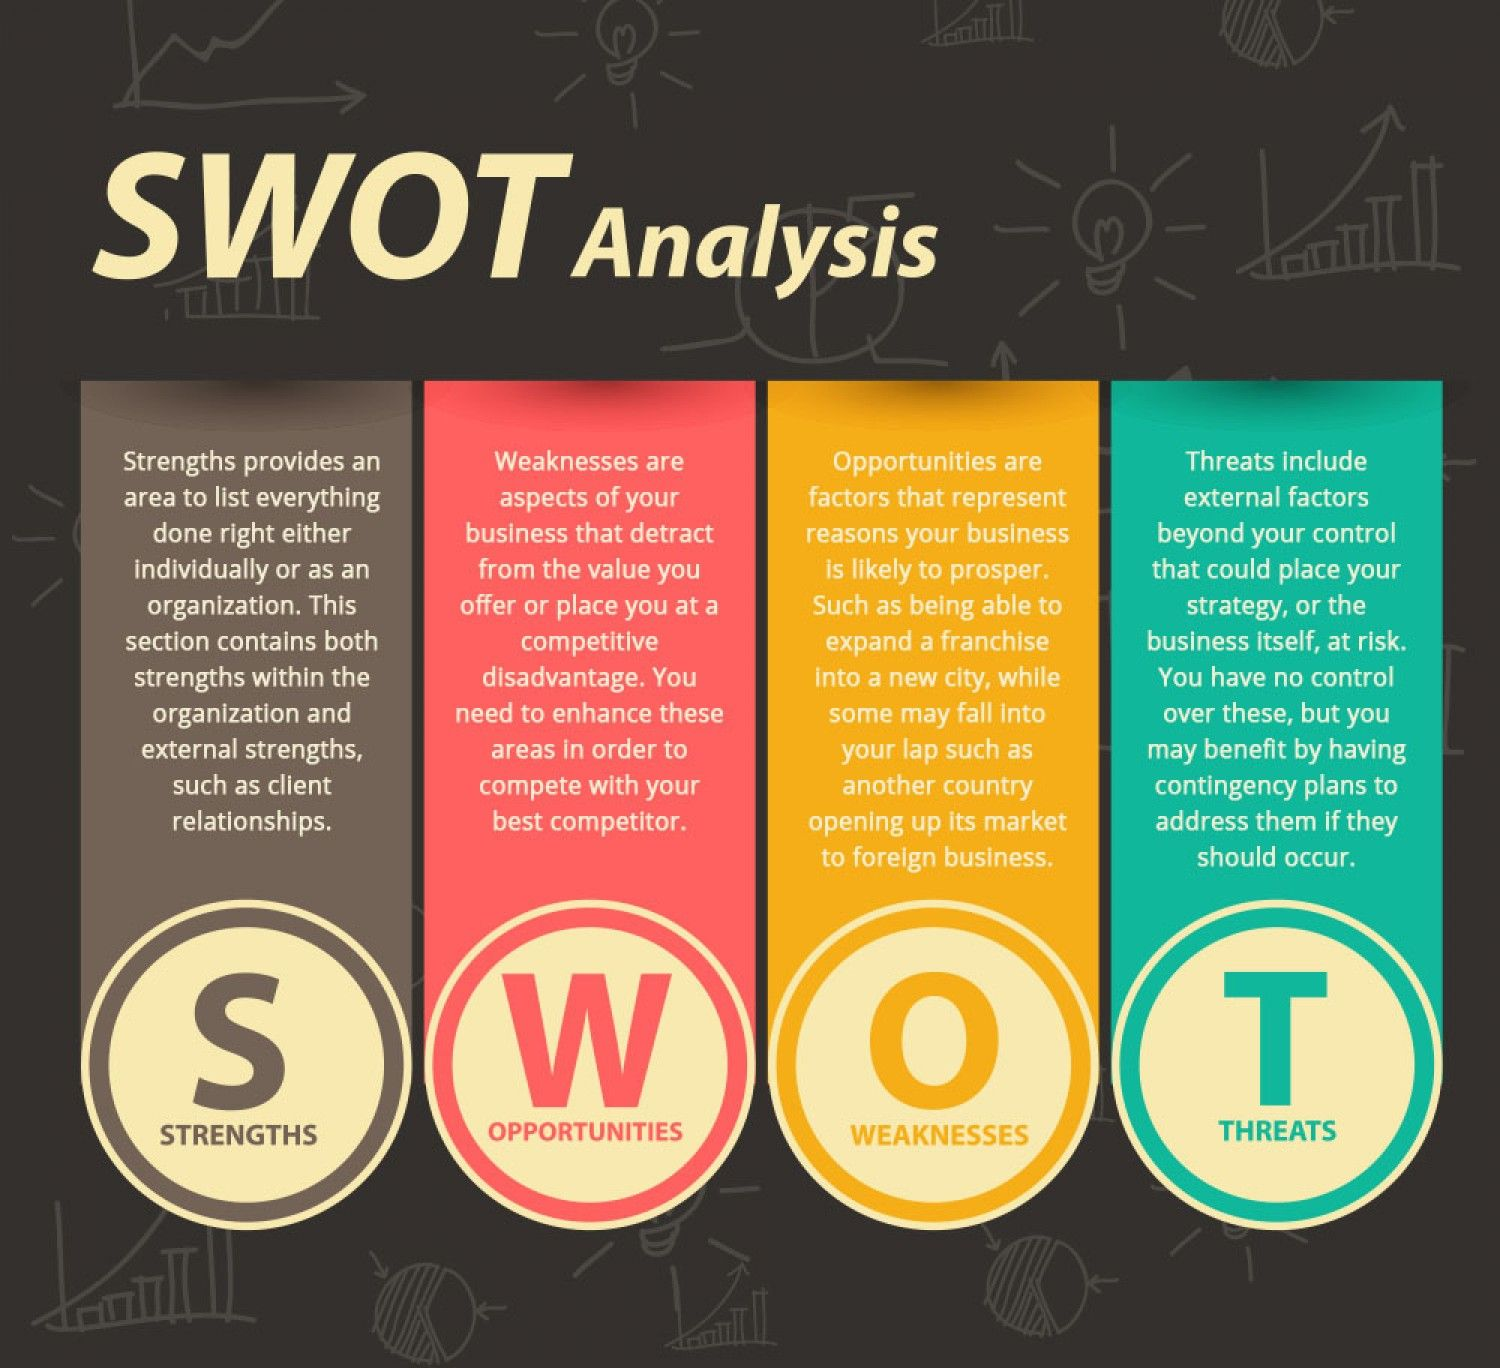 Best 25 Swot analysis ideas on